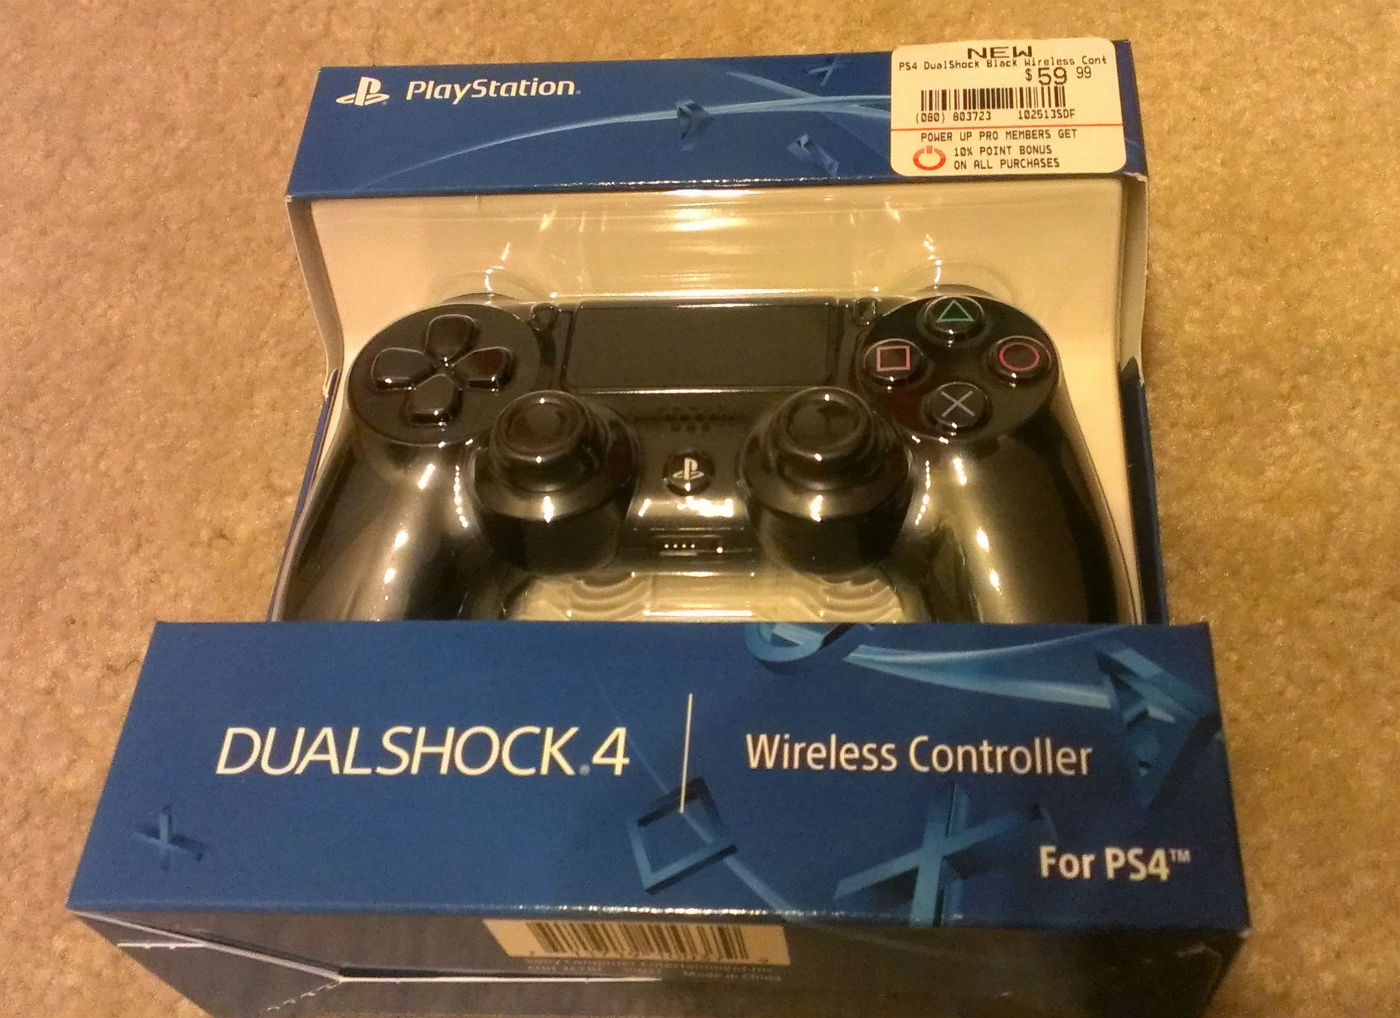 Just How Good Is The Dualshock 4 Hands On With New Ps4 Ds4 Dual Shock Light Blue Model Controller Usgamer